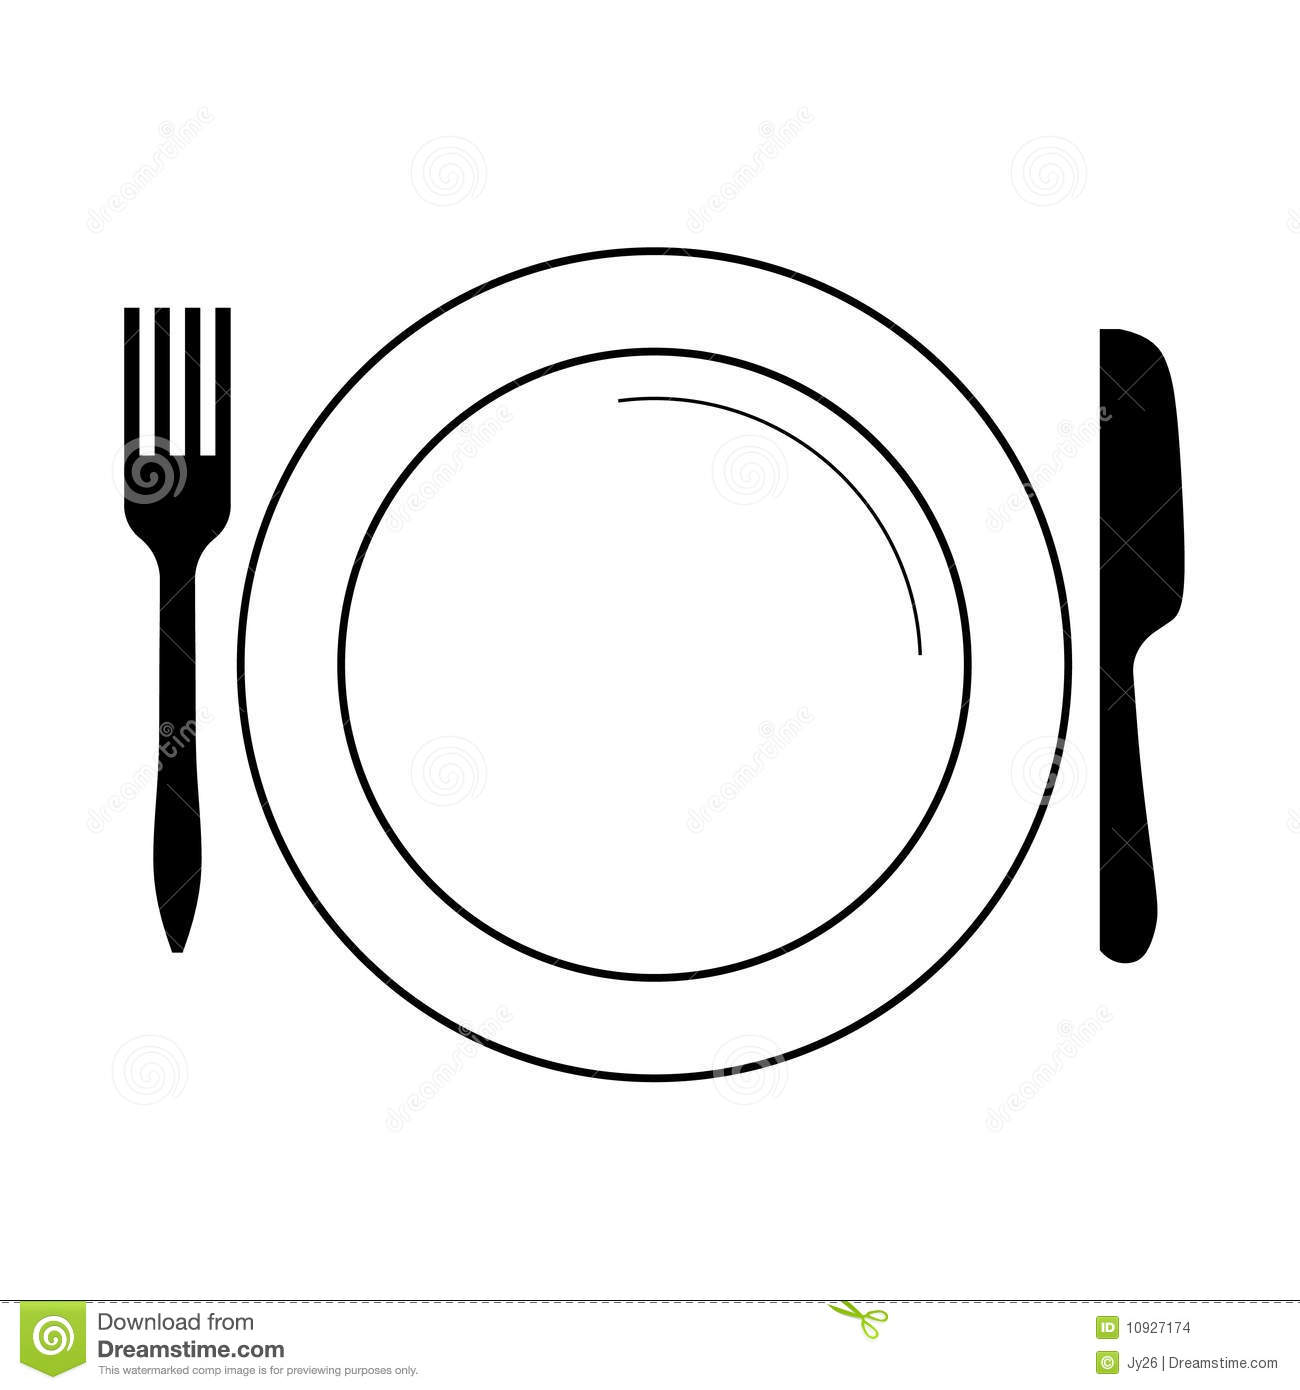 Plate knife and fork clipart banner transparent library 13 Plate Fork Vector Images - Dinner Plate Fork Knife Clip Art ... banner transparent library